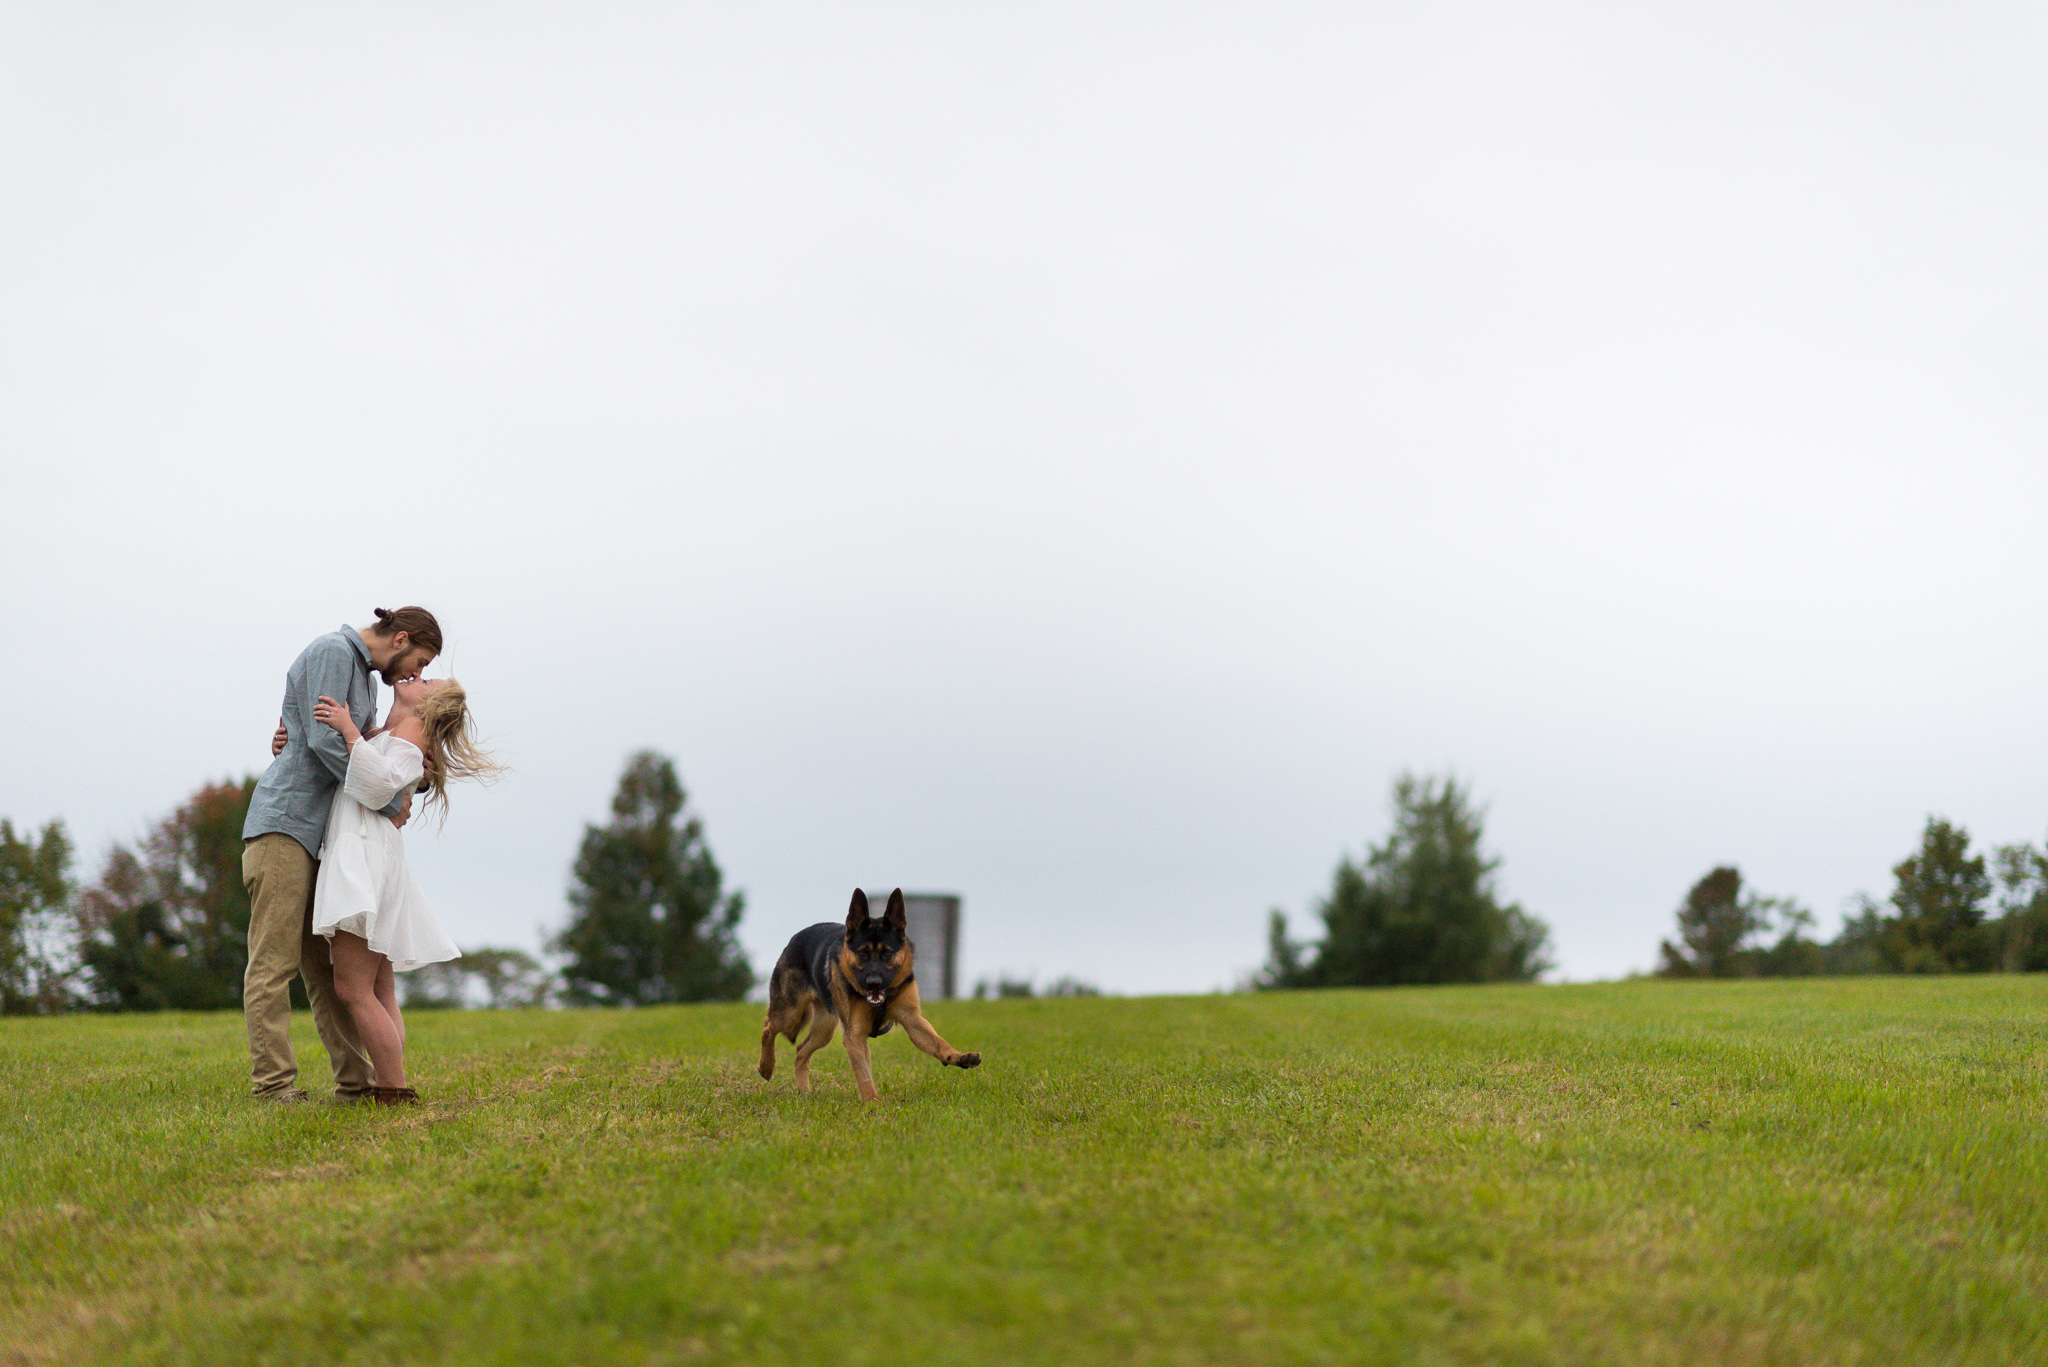 Elk-mountain-wedding-engagement-photography-uniondale-susquehanna-county-steven-serge-photography-27.jpg